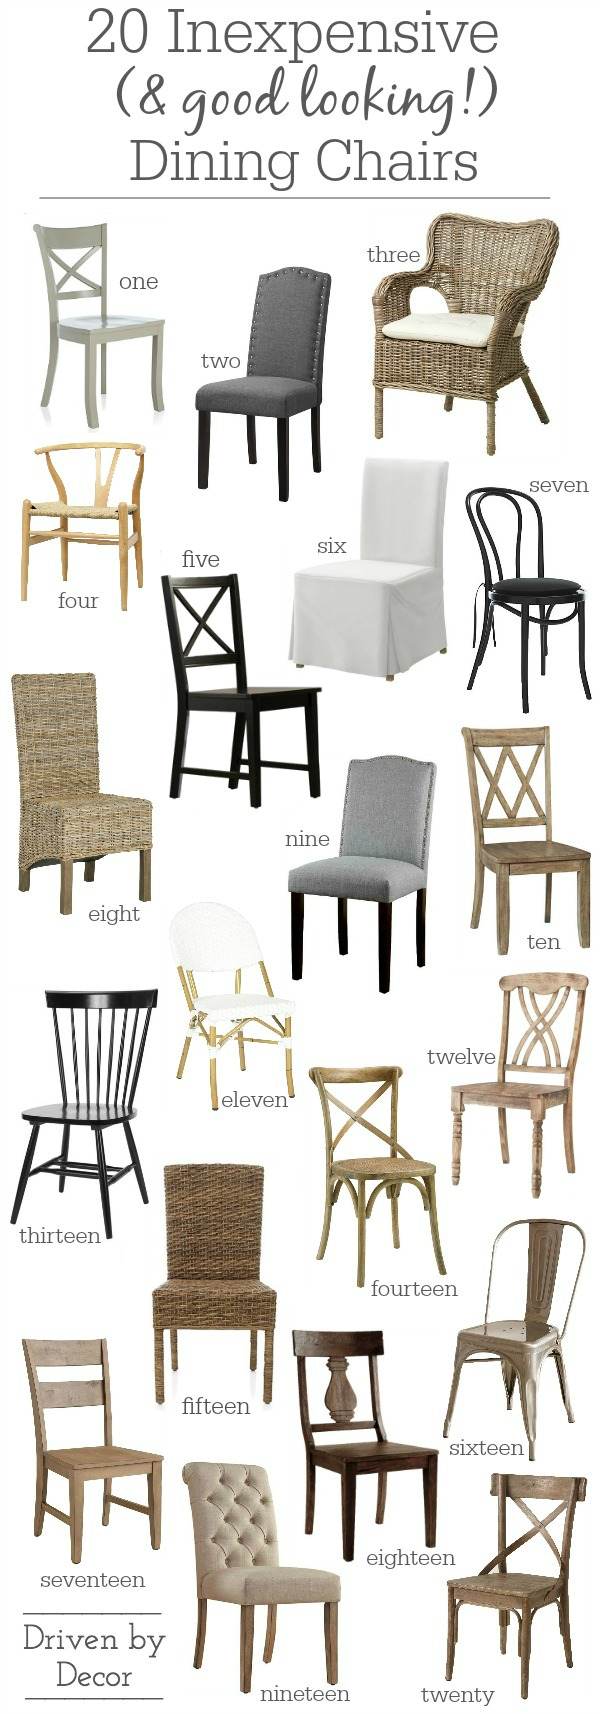 Fabulous round-up of inexpensive but stylish dining side chairs!